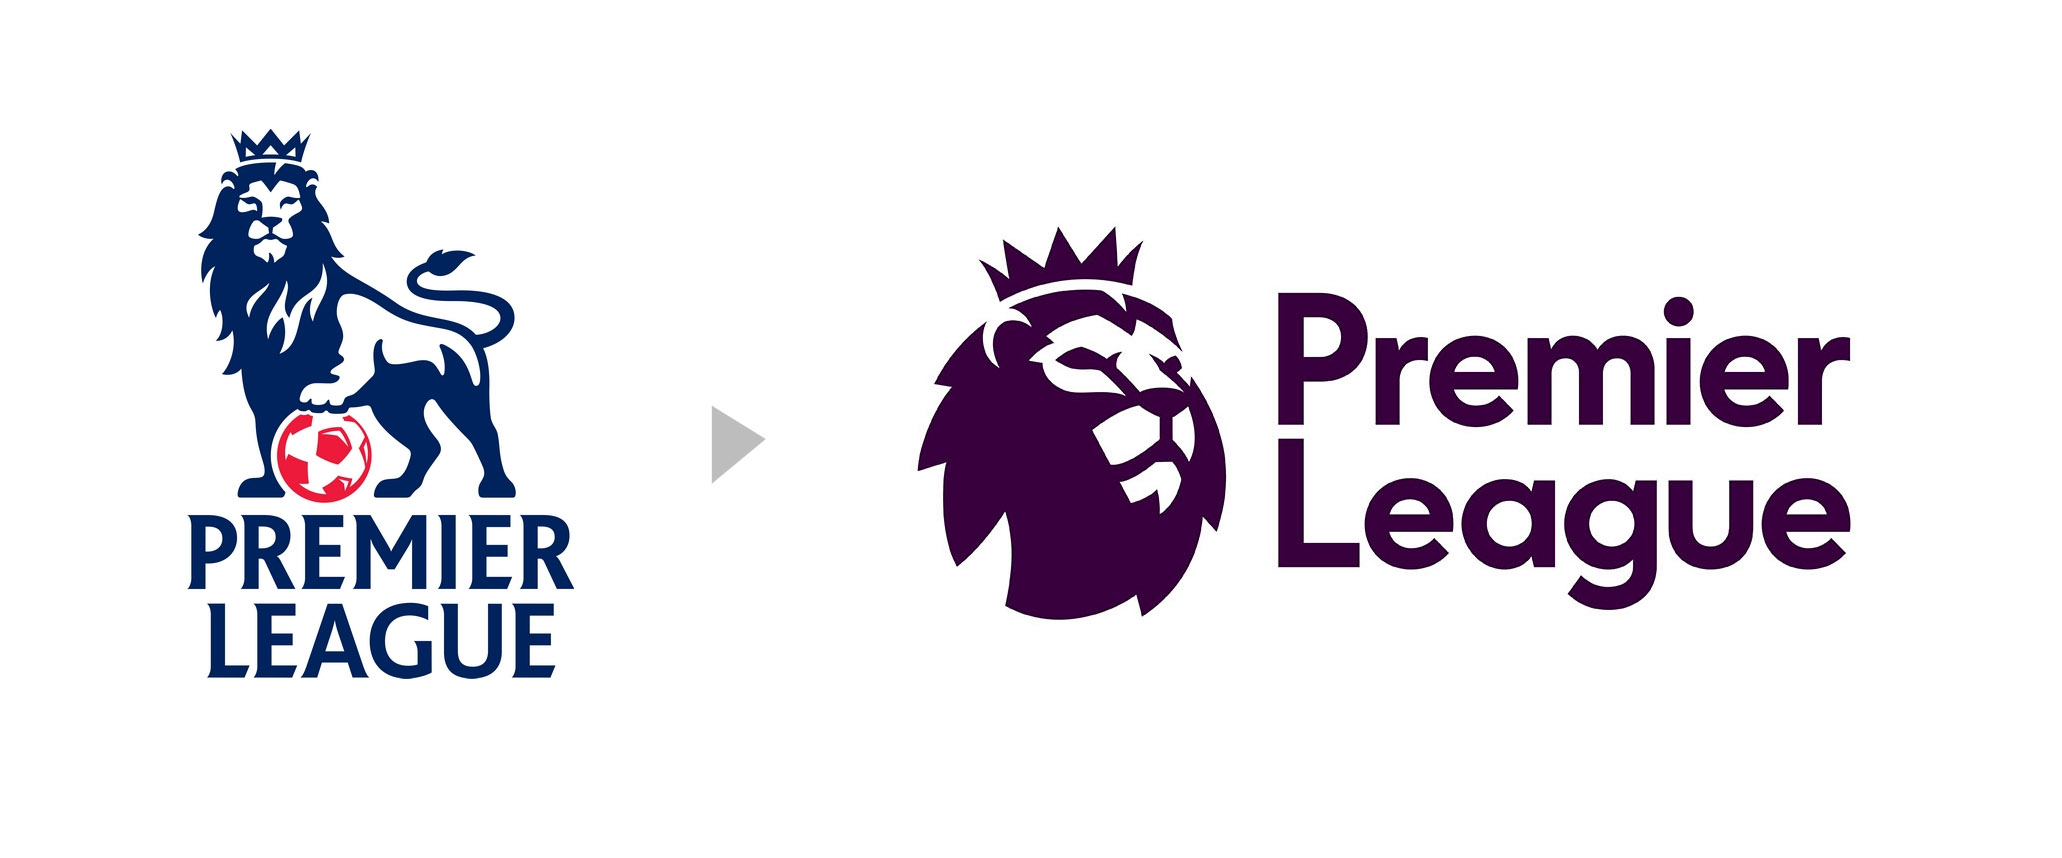 Nueva identidad visual de la Premier League